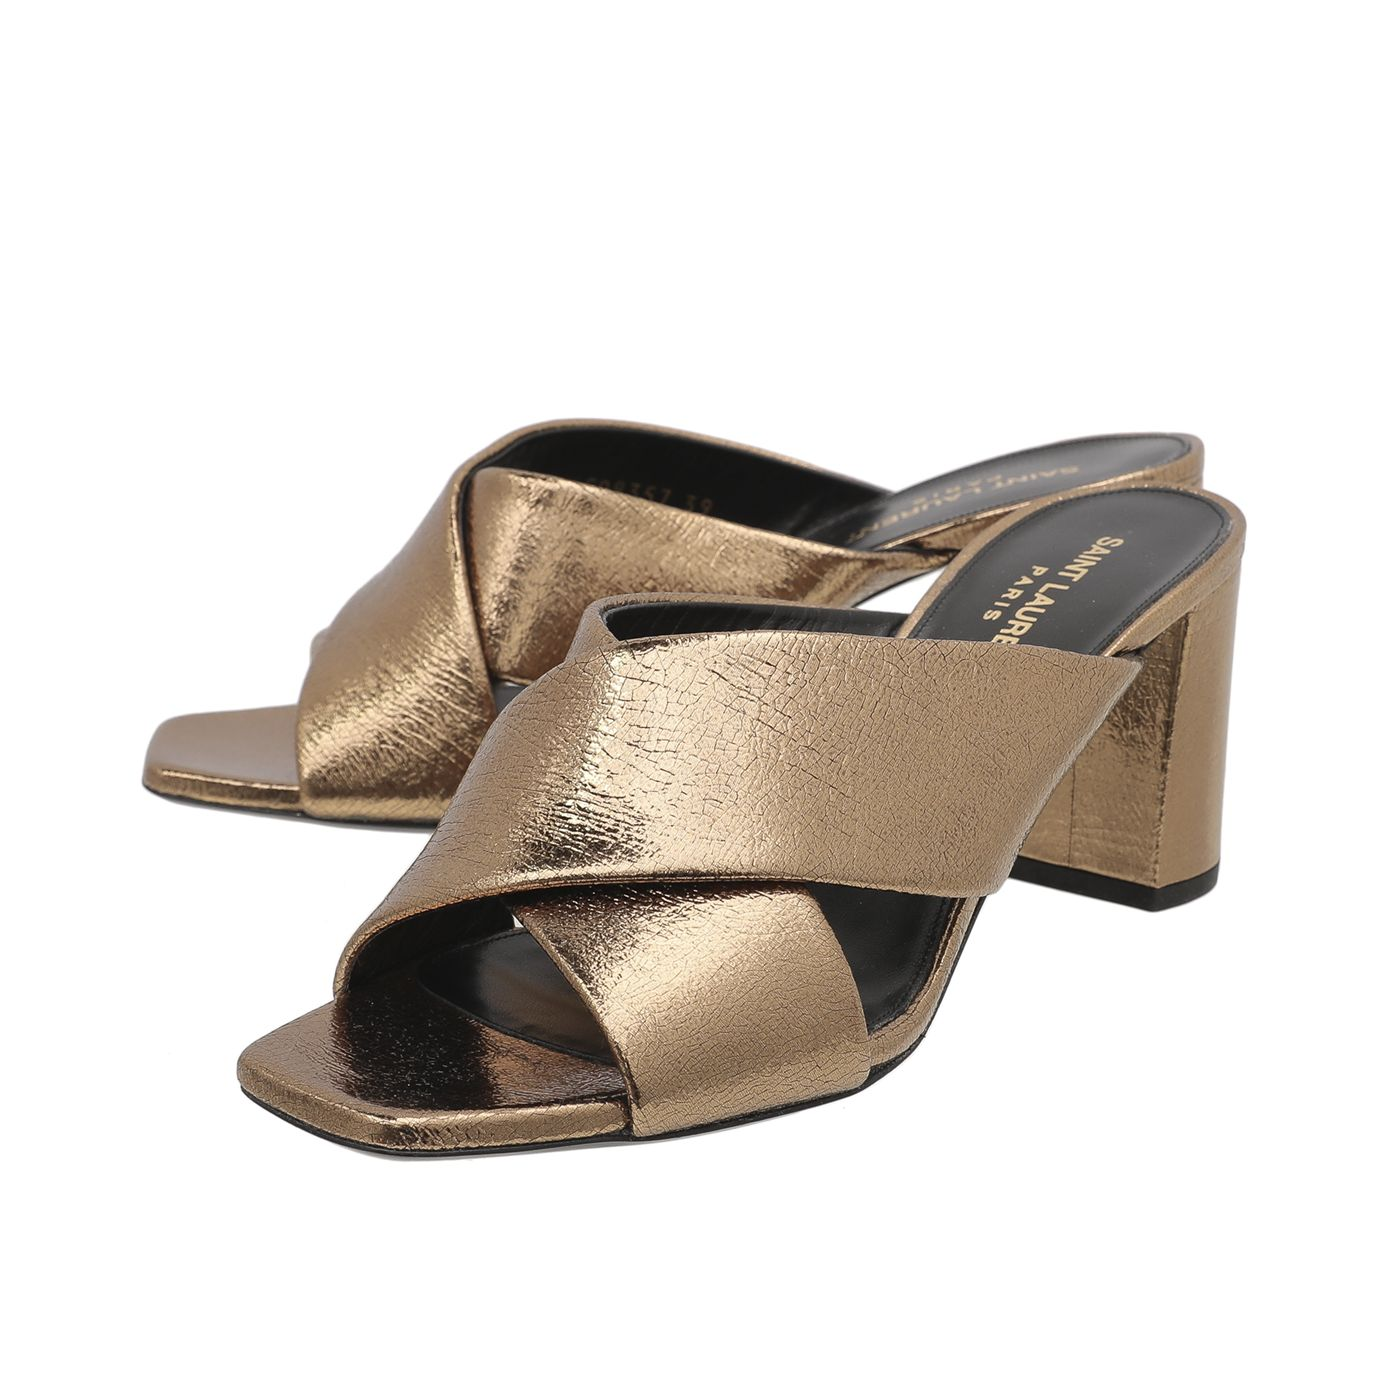 YSL Metallic Bronze Loulou Crossover Sandals 39